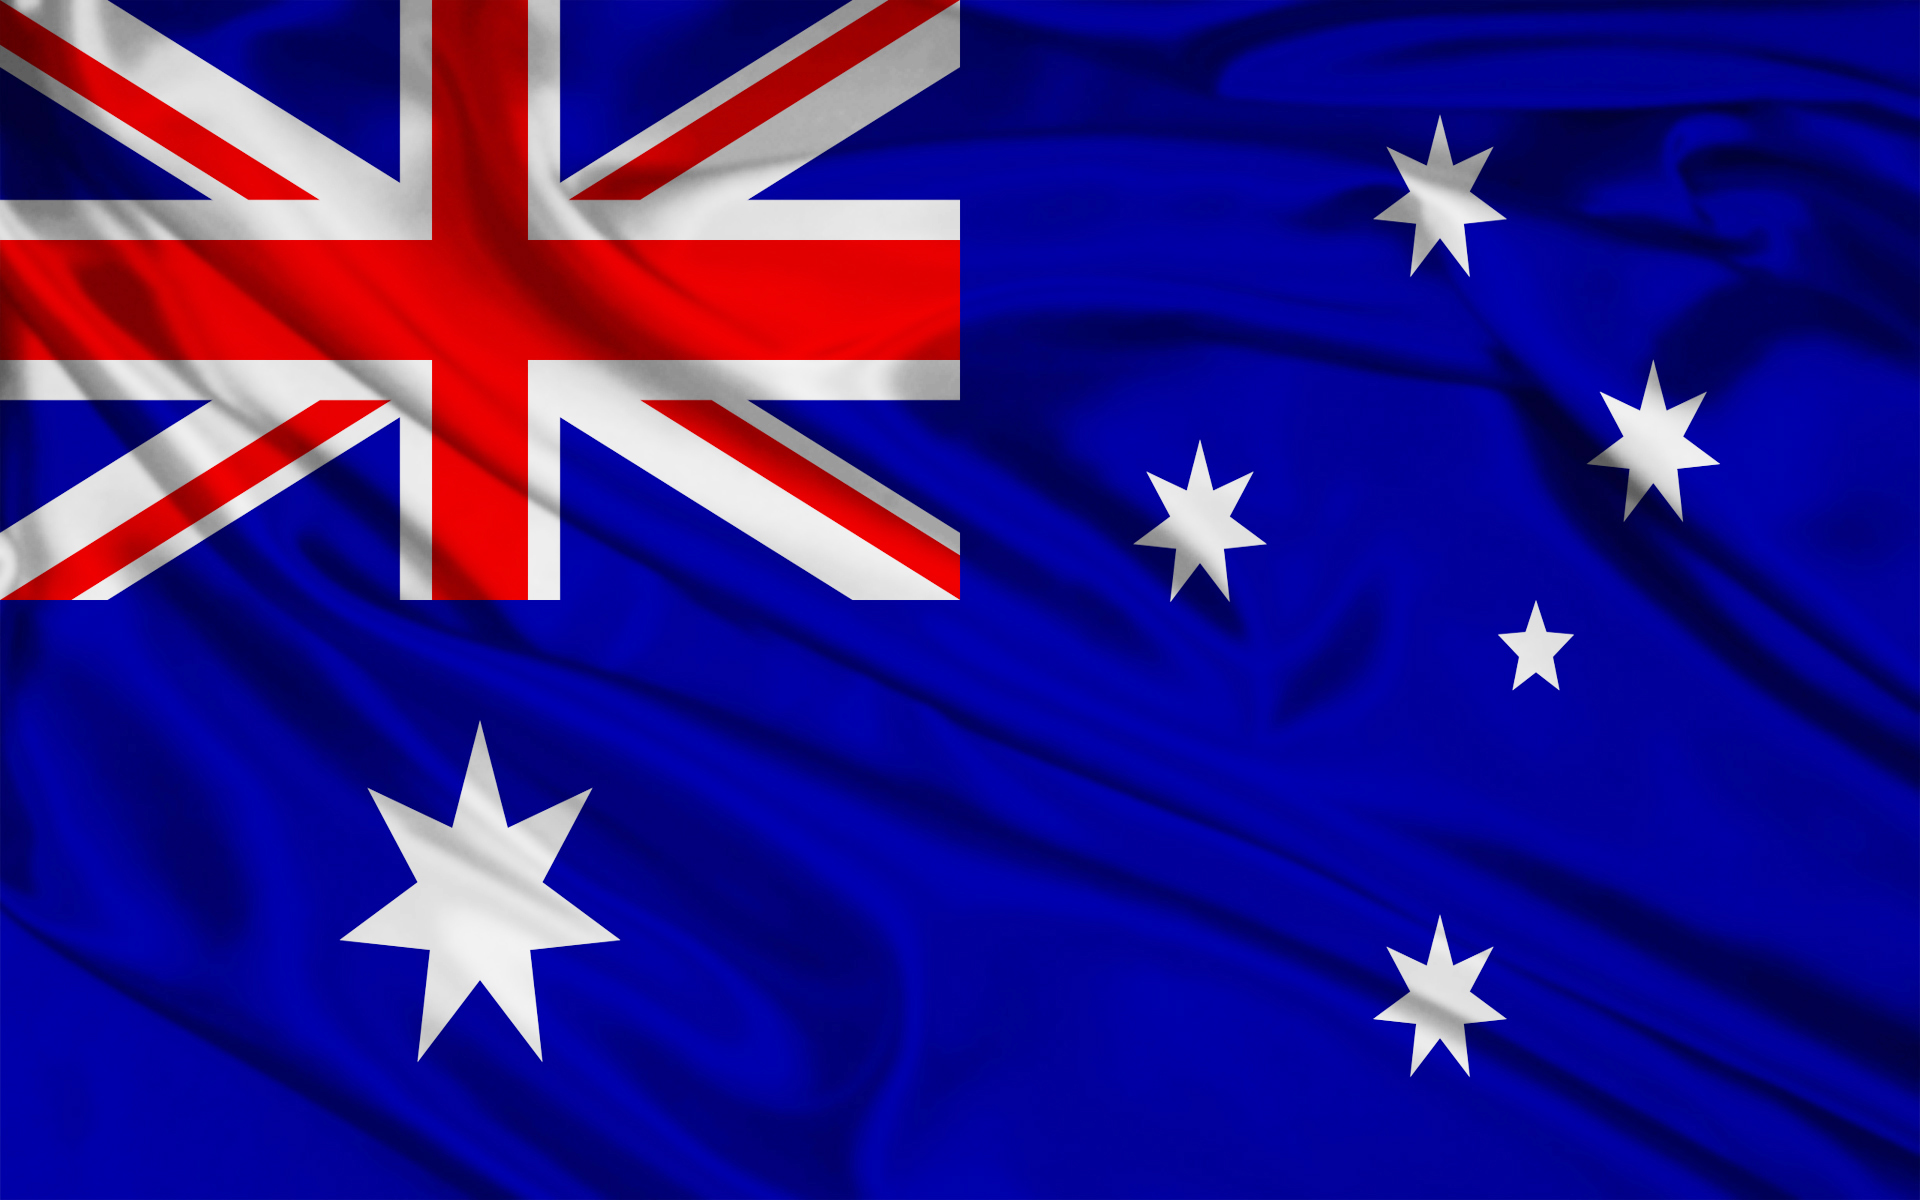 Flag Of Australia - The Symbol of Brightness. History And ...